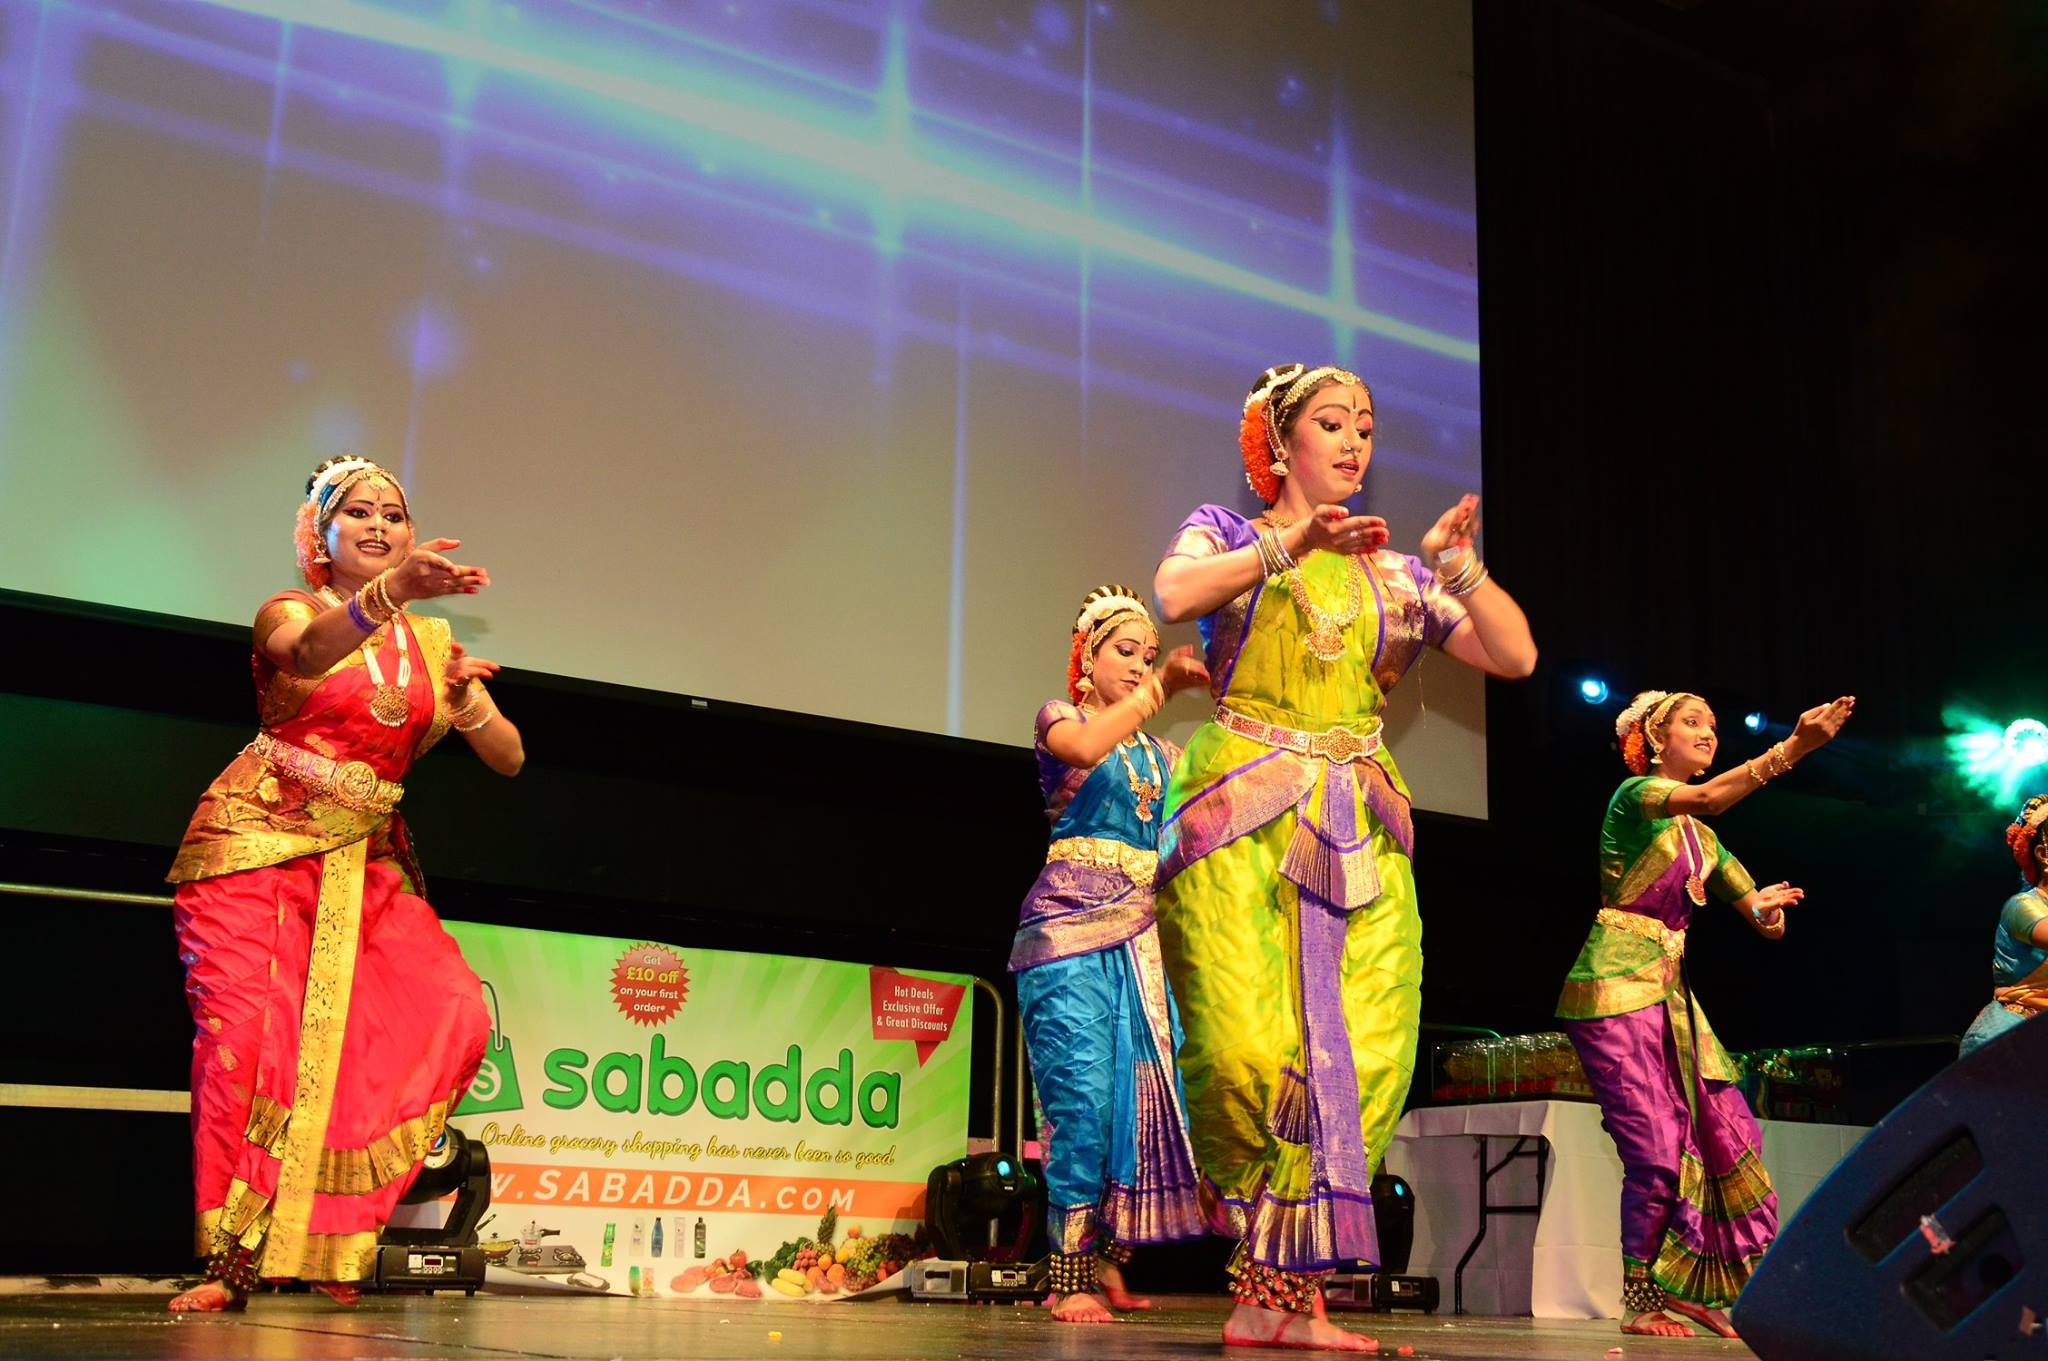 jayate kuchipudi closing cermony @ troxy, london on 9th july